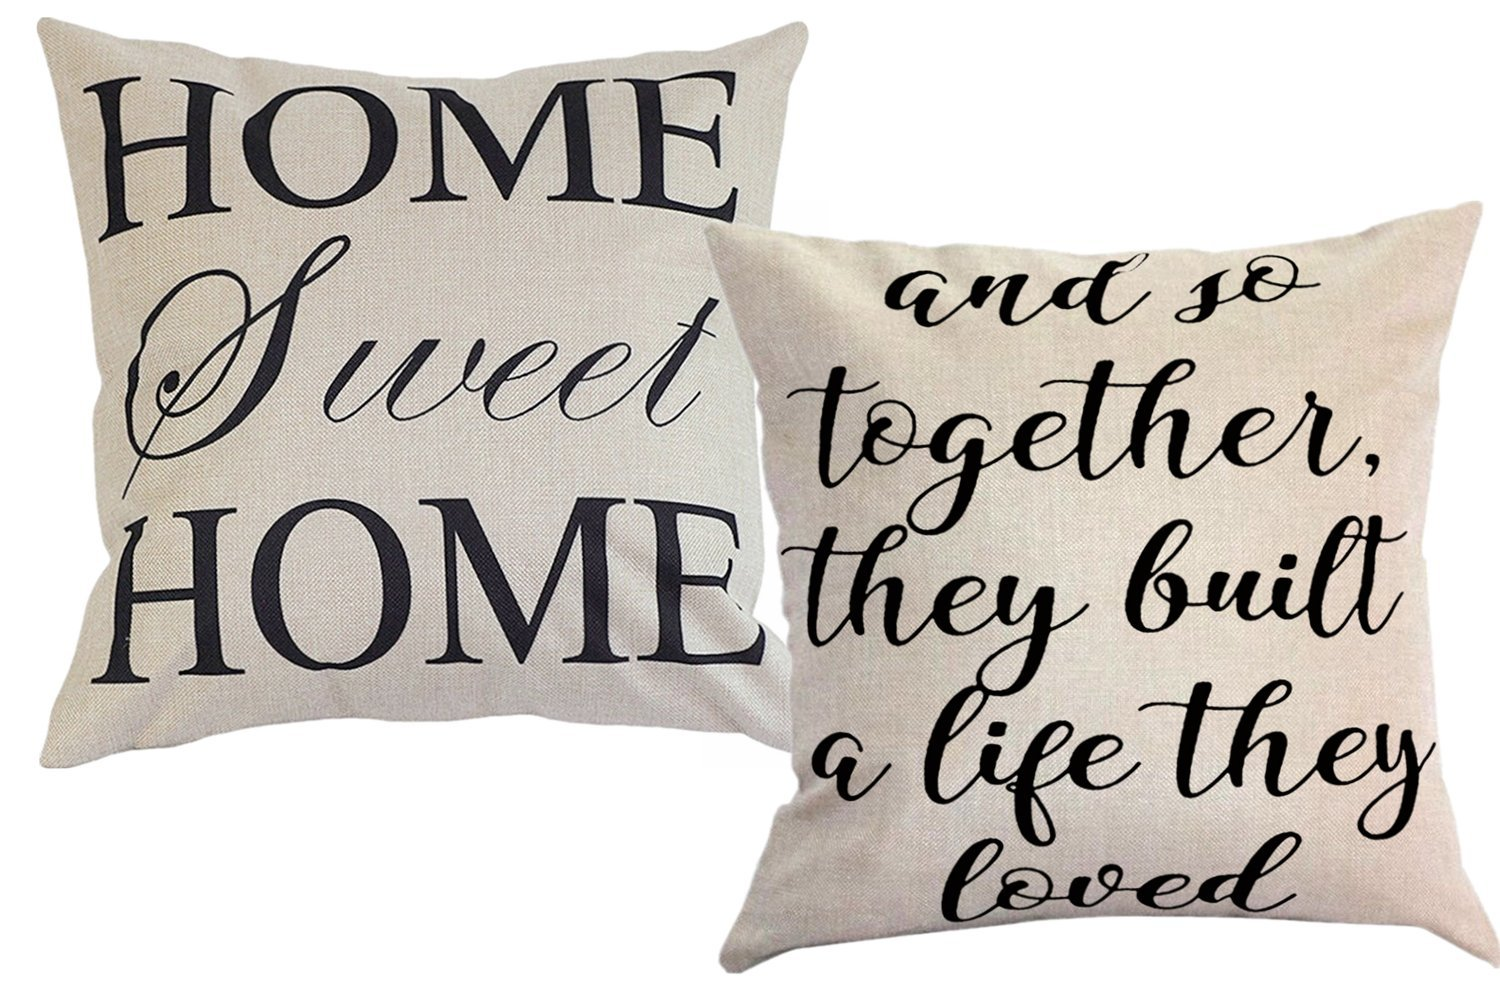 Buyer this pillow with your mortgage savings.